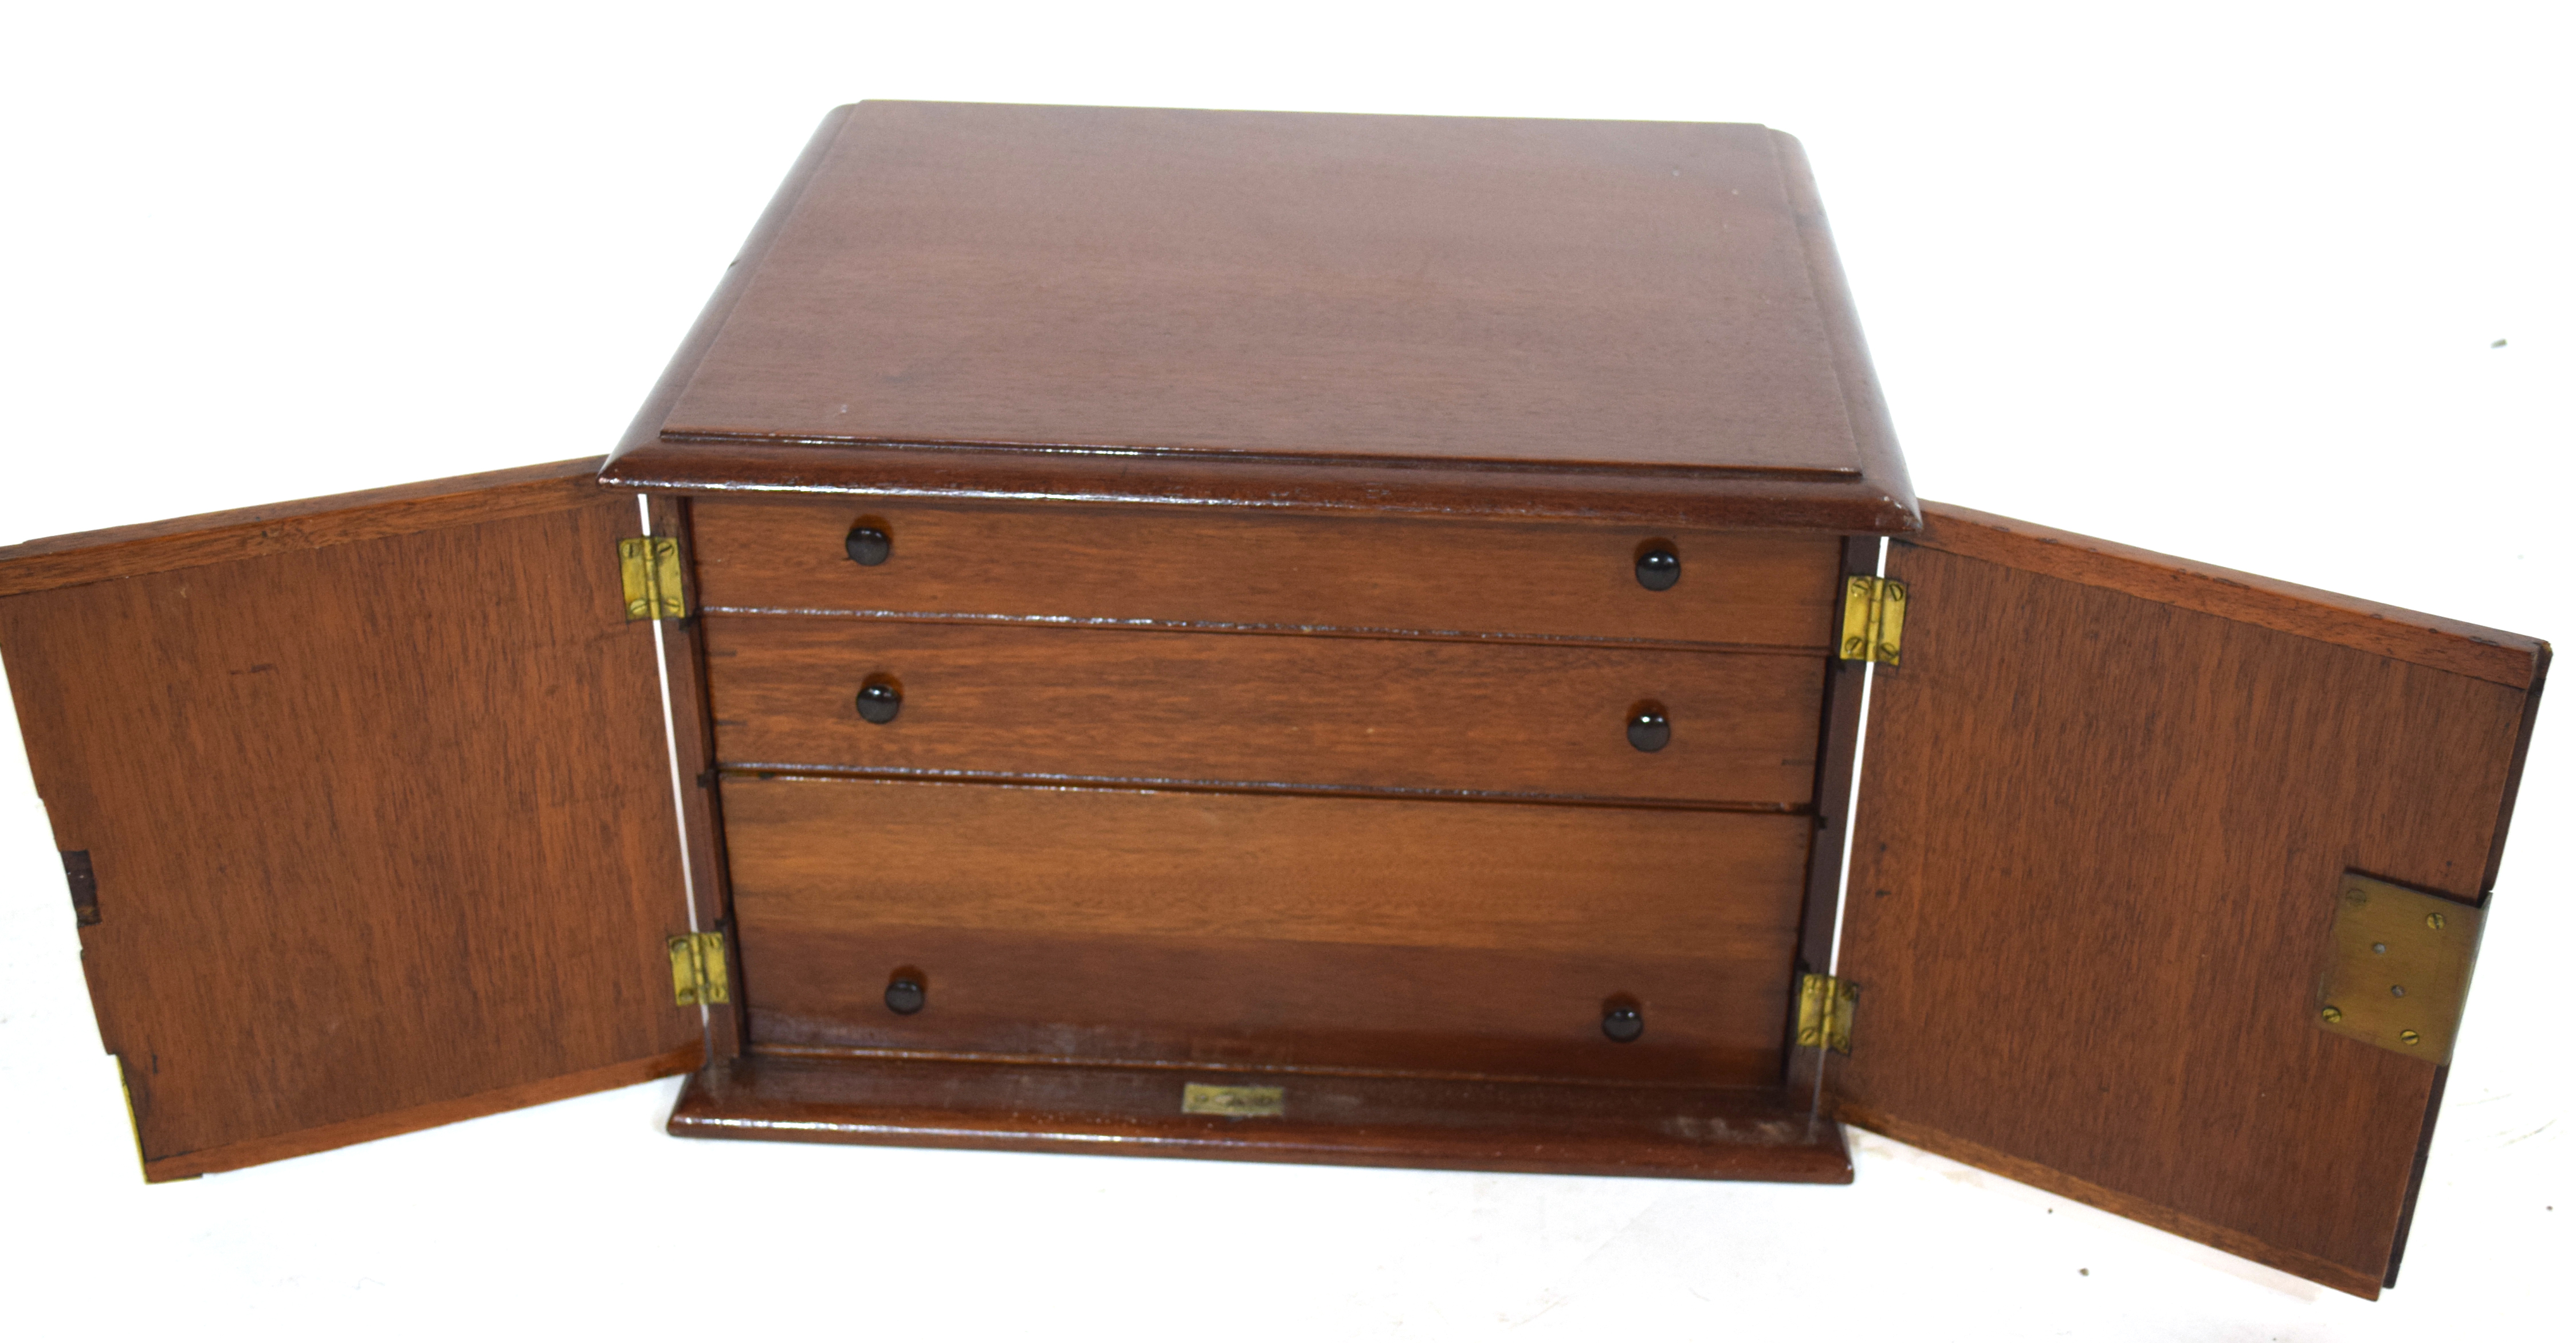 Late 19th/early 20th century hardwood table top cabinet with two doors opening to an interior with - Image 2 of 3